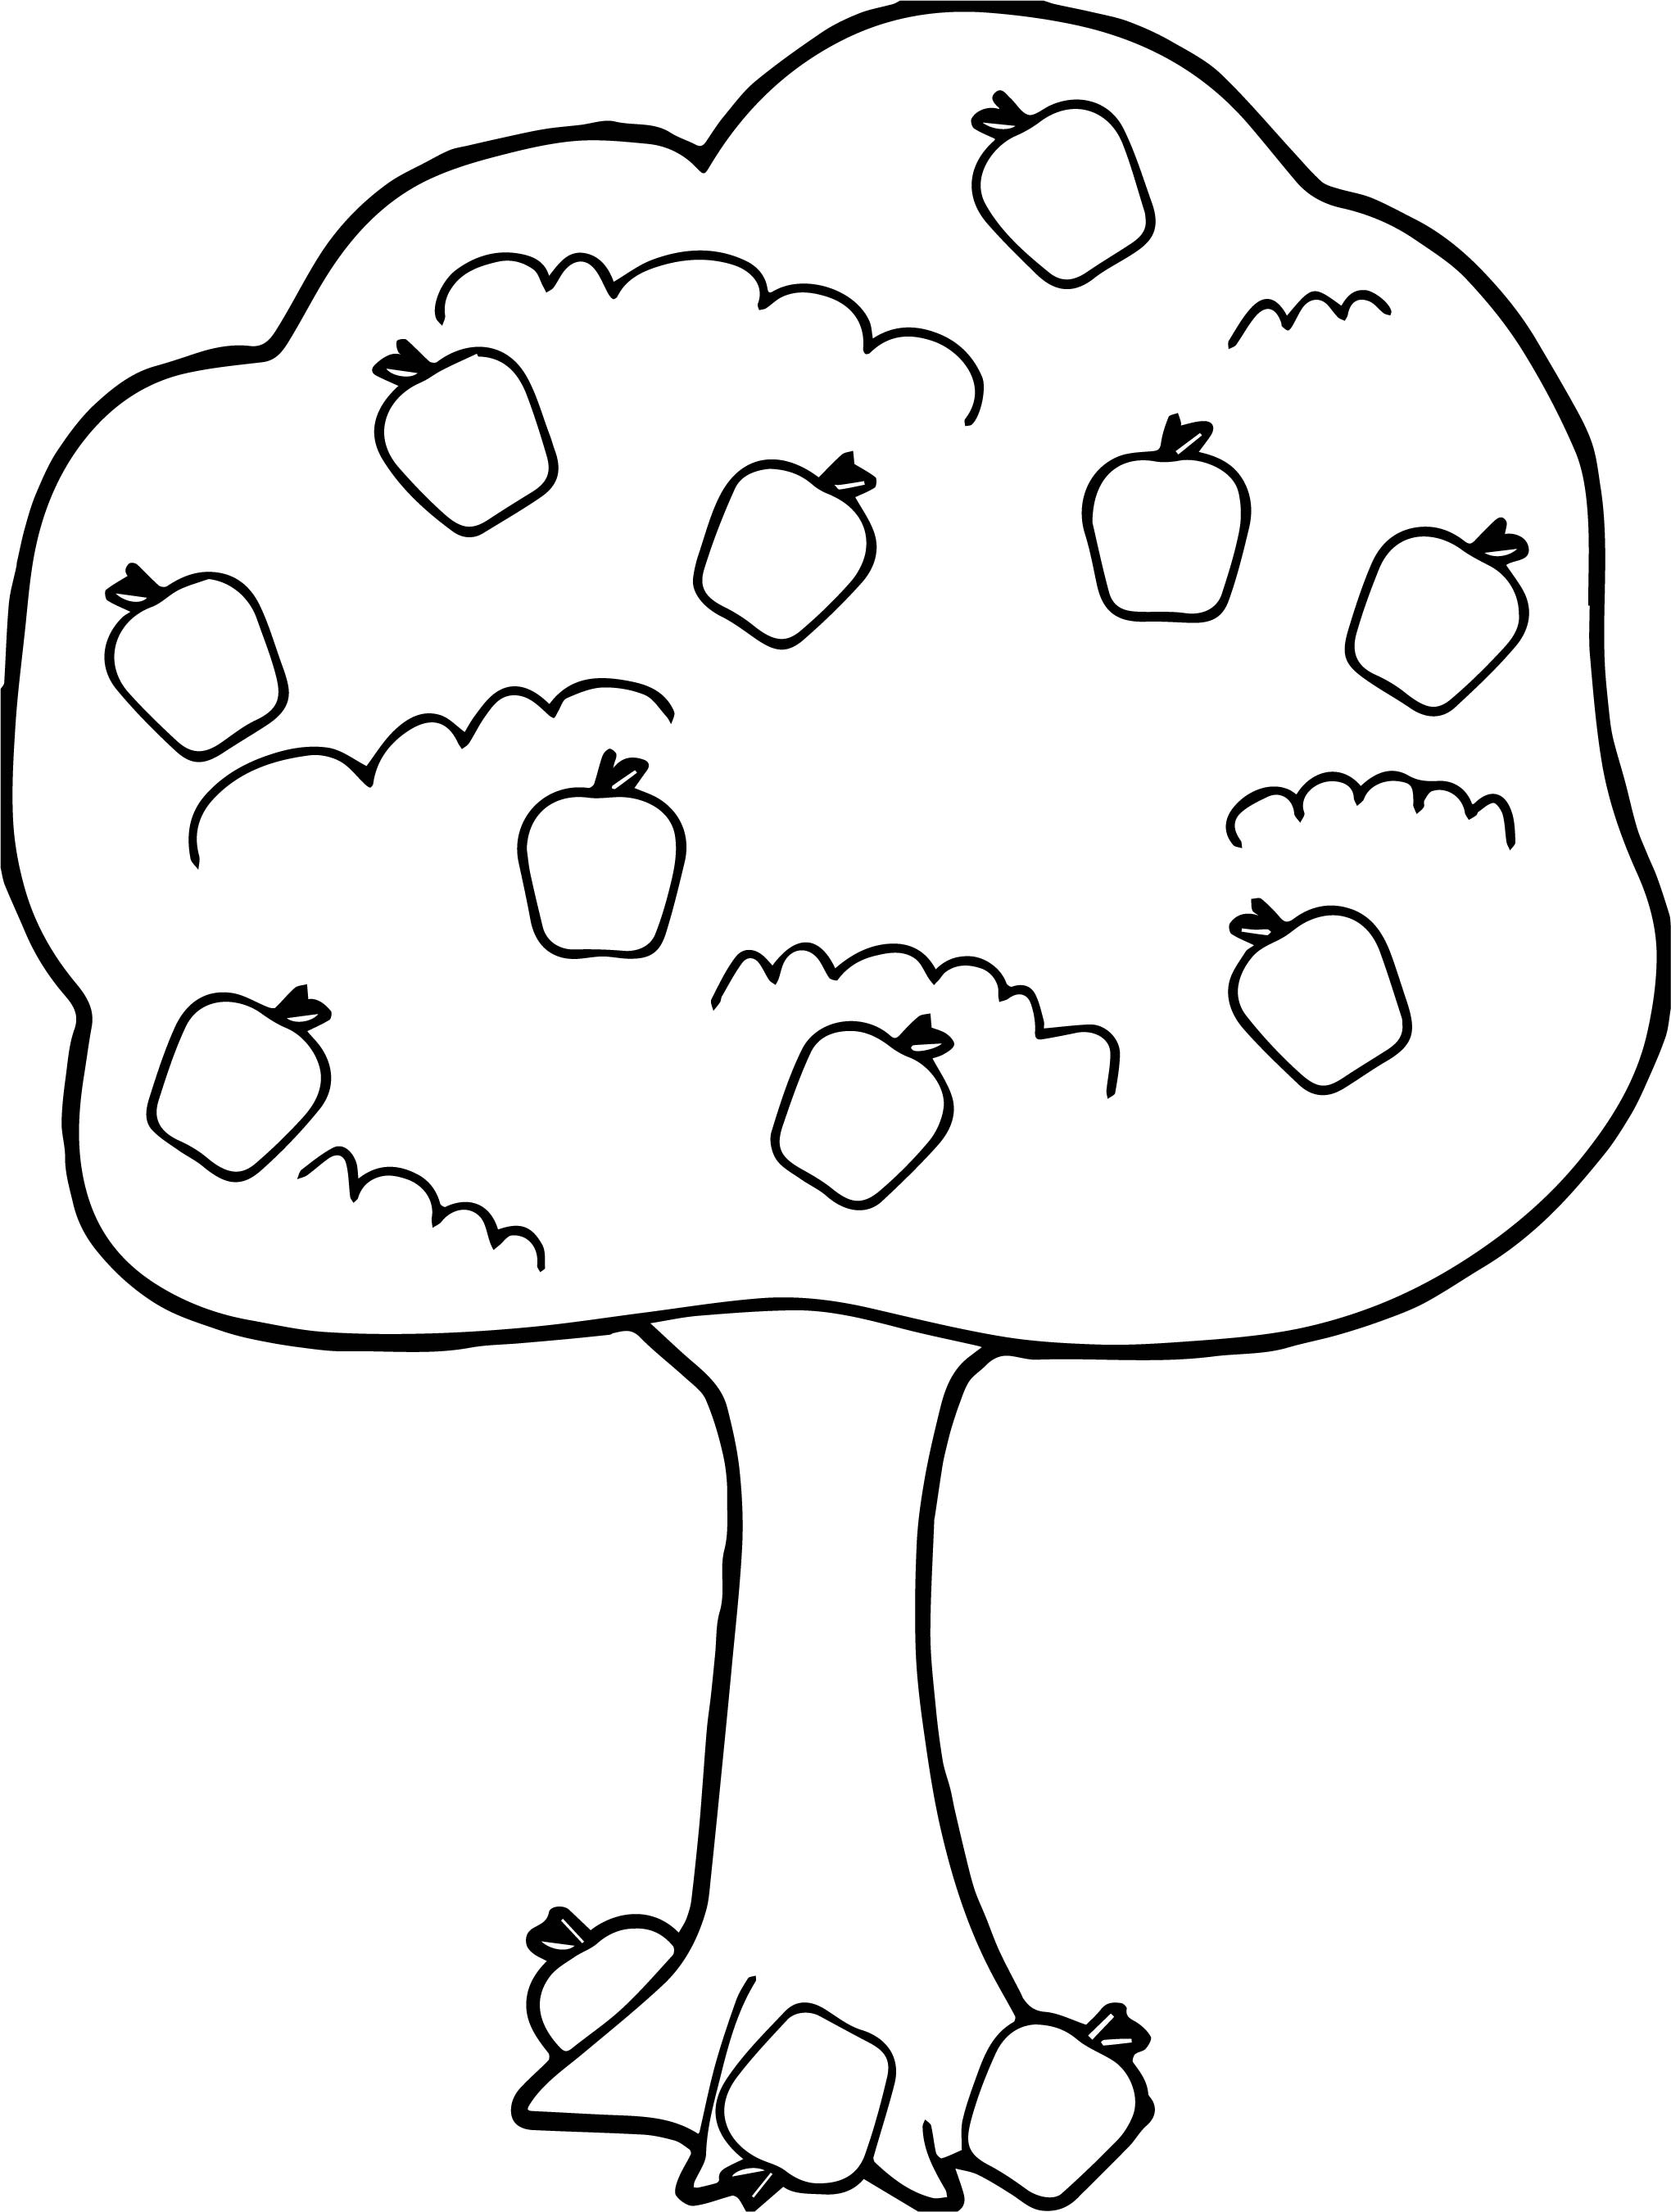 Apple Tree Coloring Pages